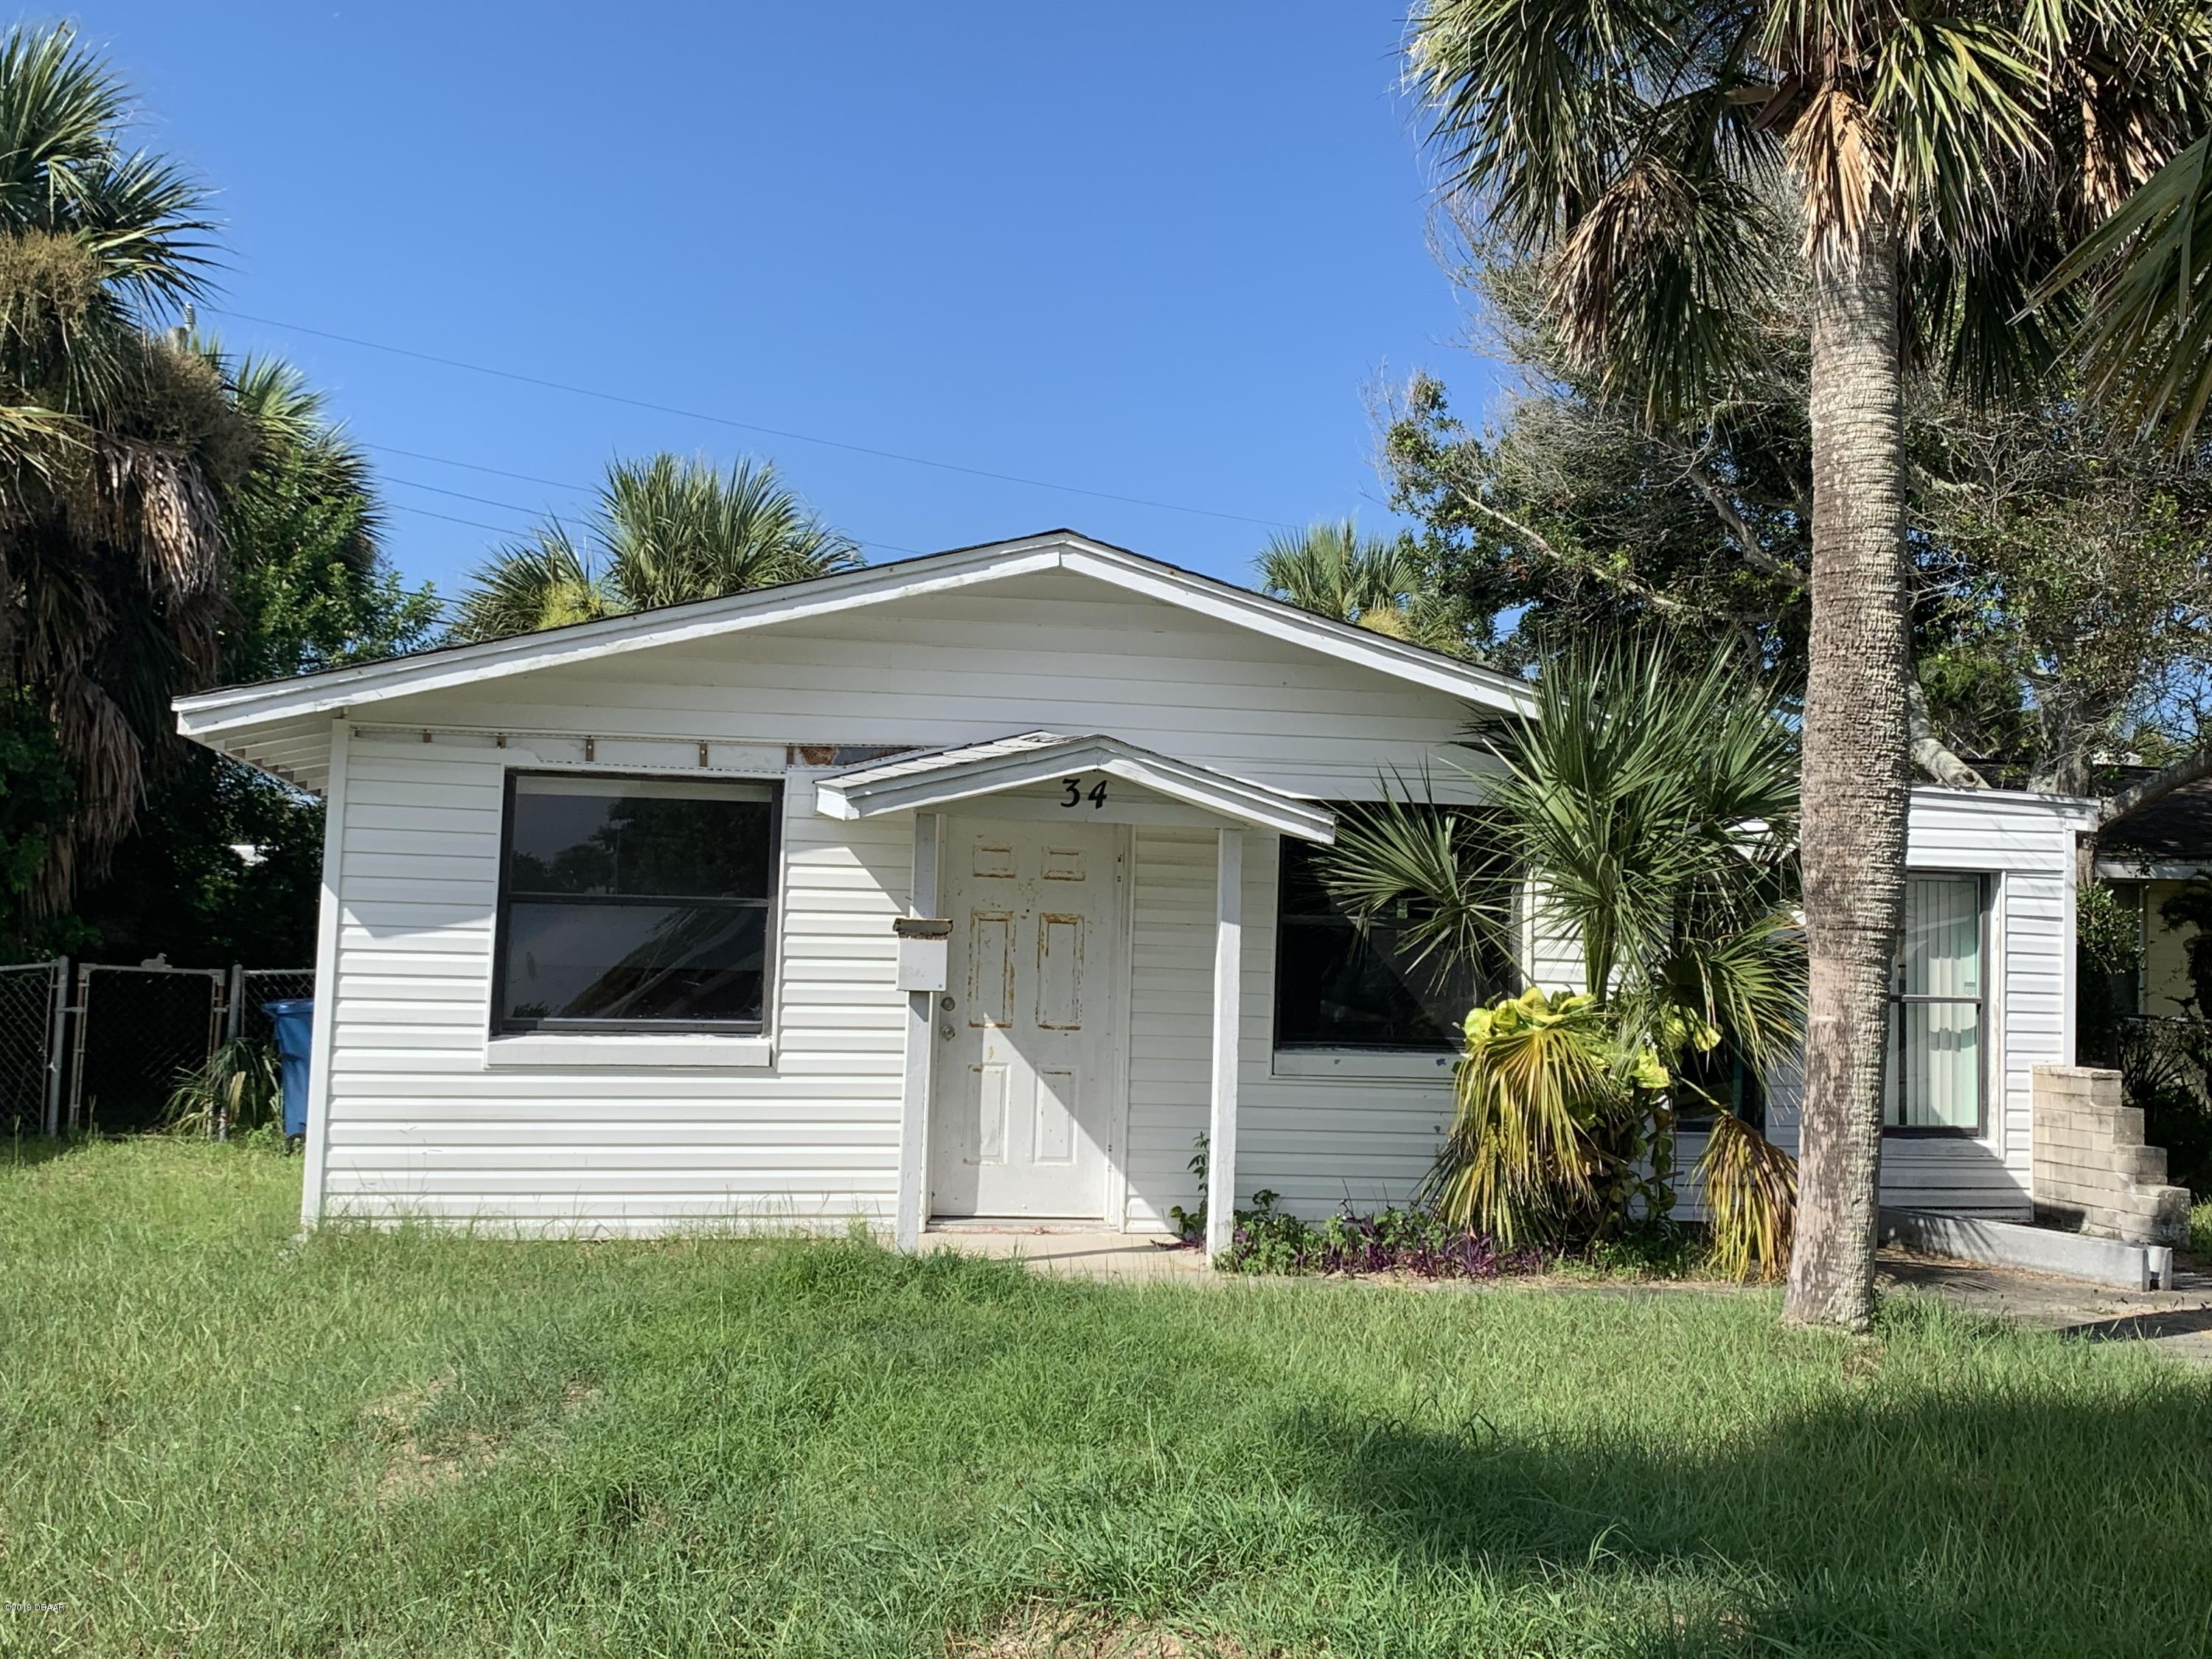 Photo of 34 Alamanda Drive, Ormond Beach, FL 32176